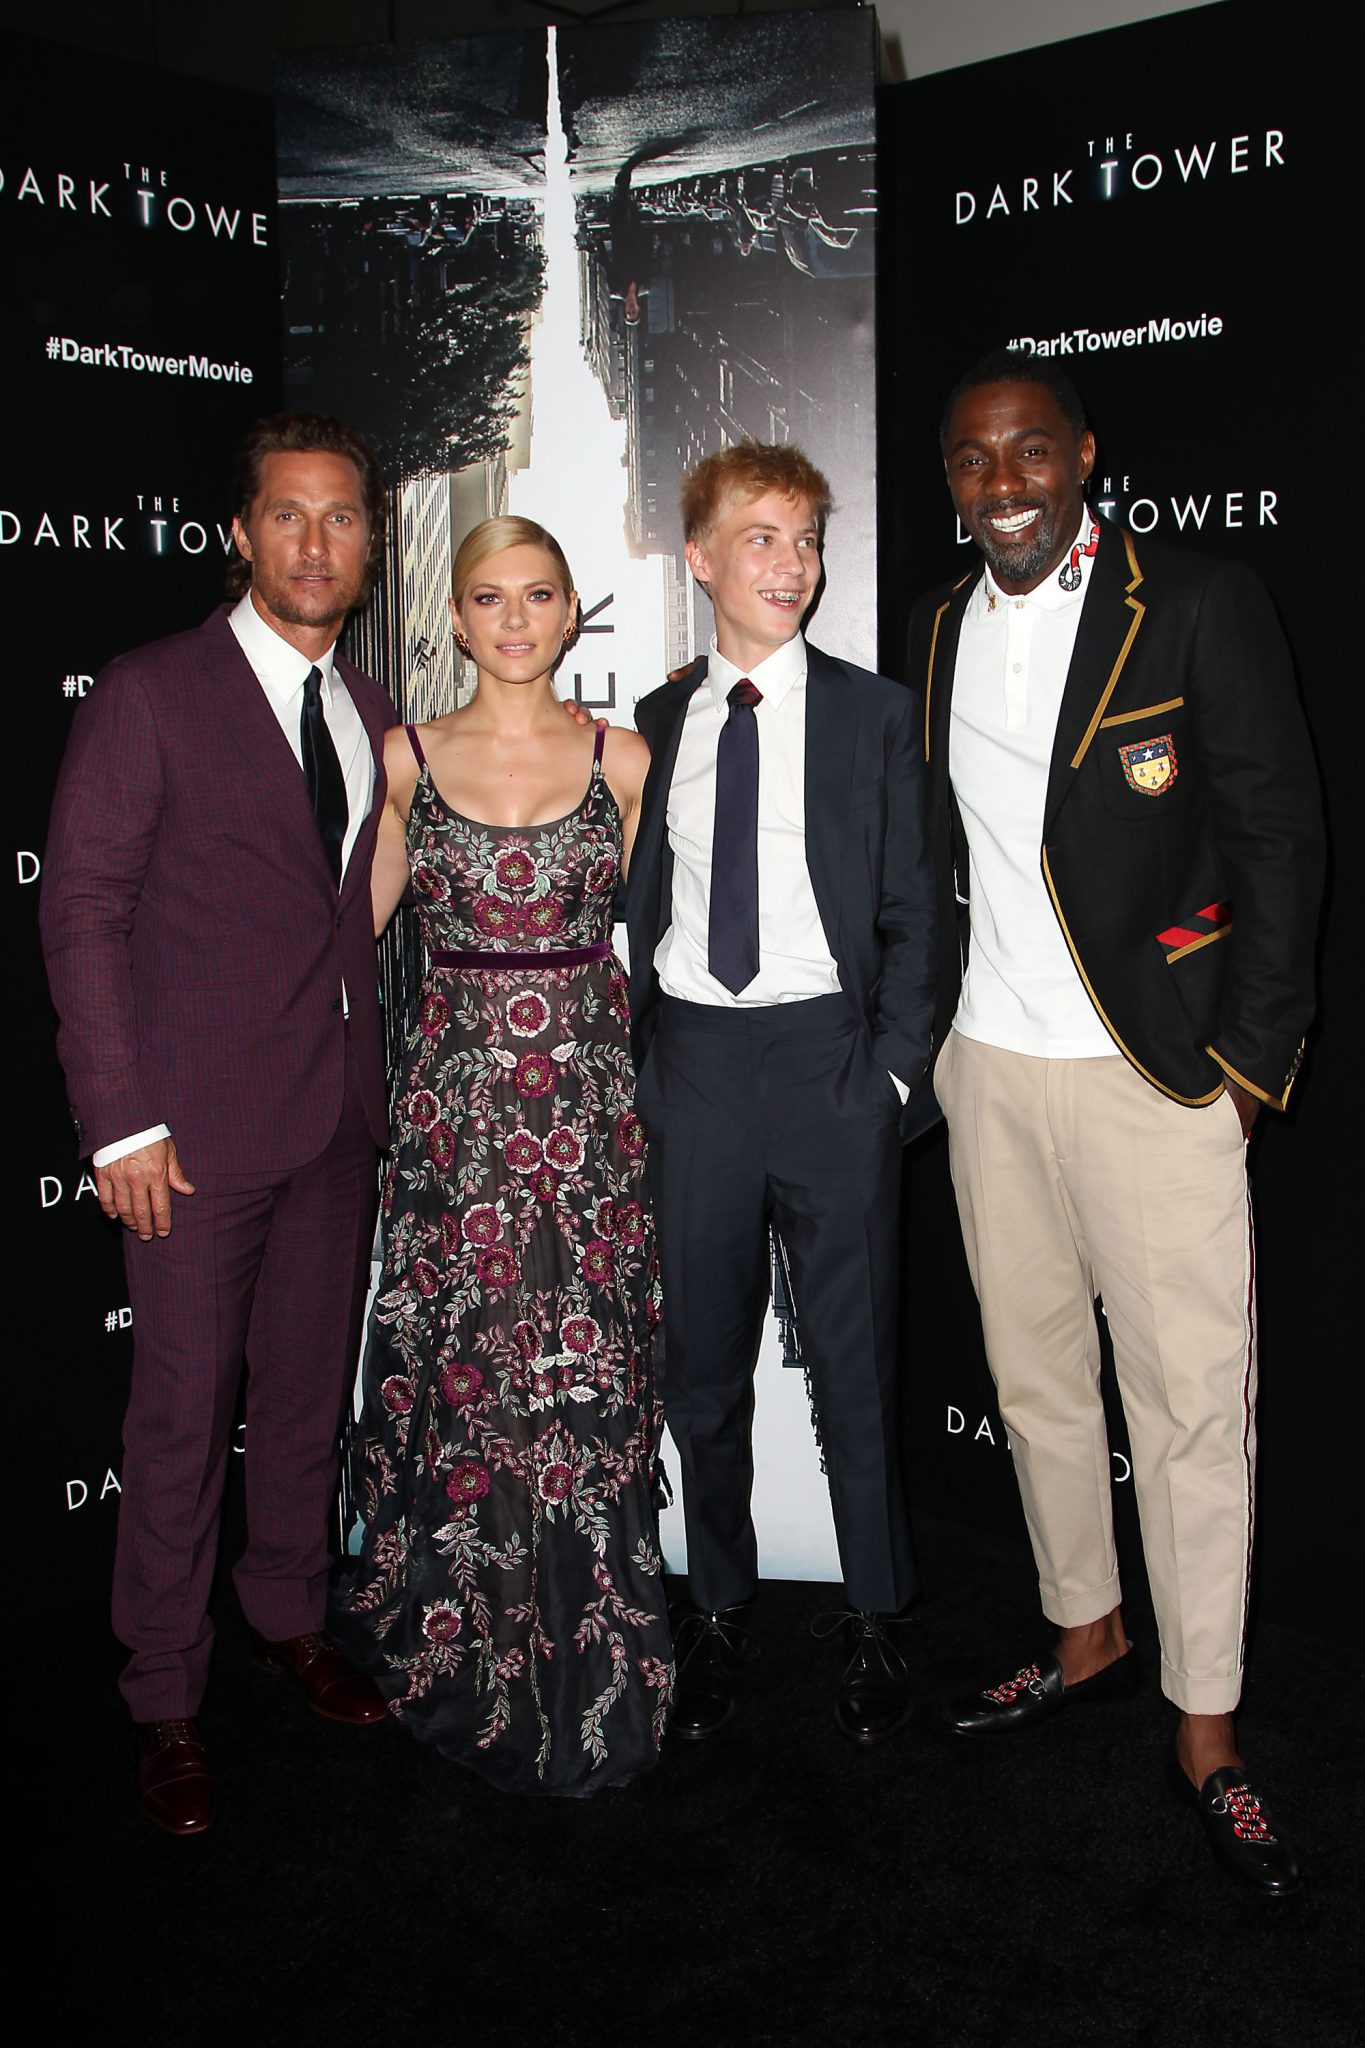 The Dark Tower Premiere In New York City